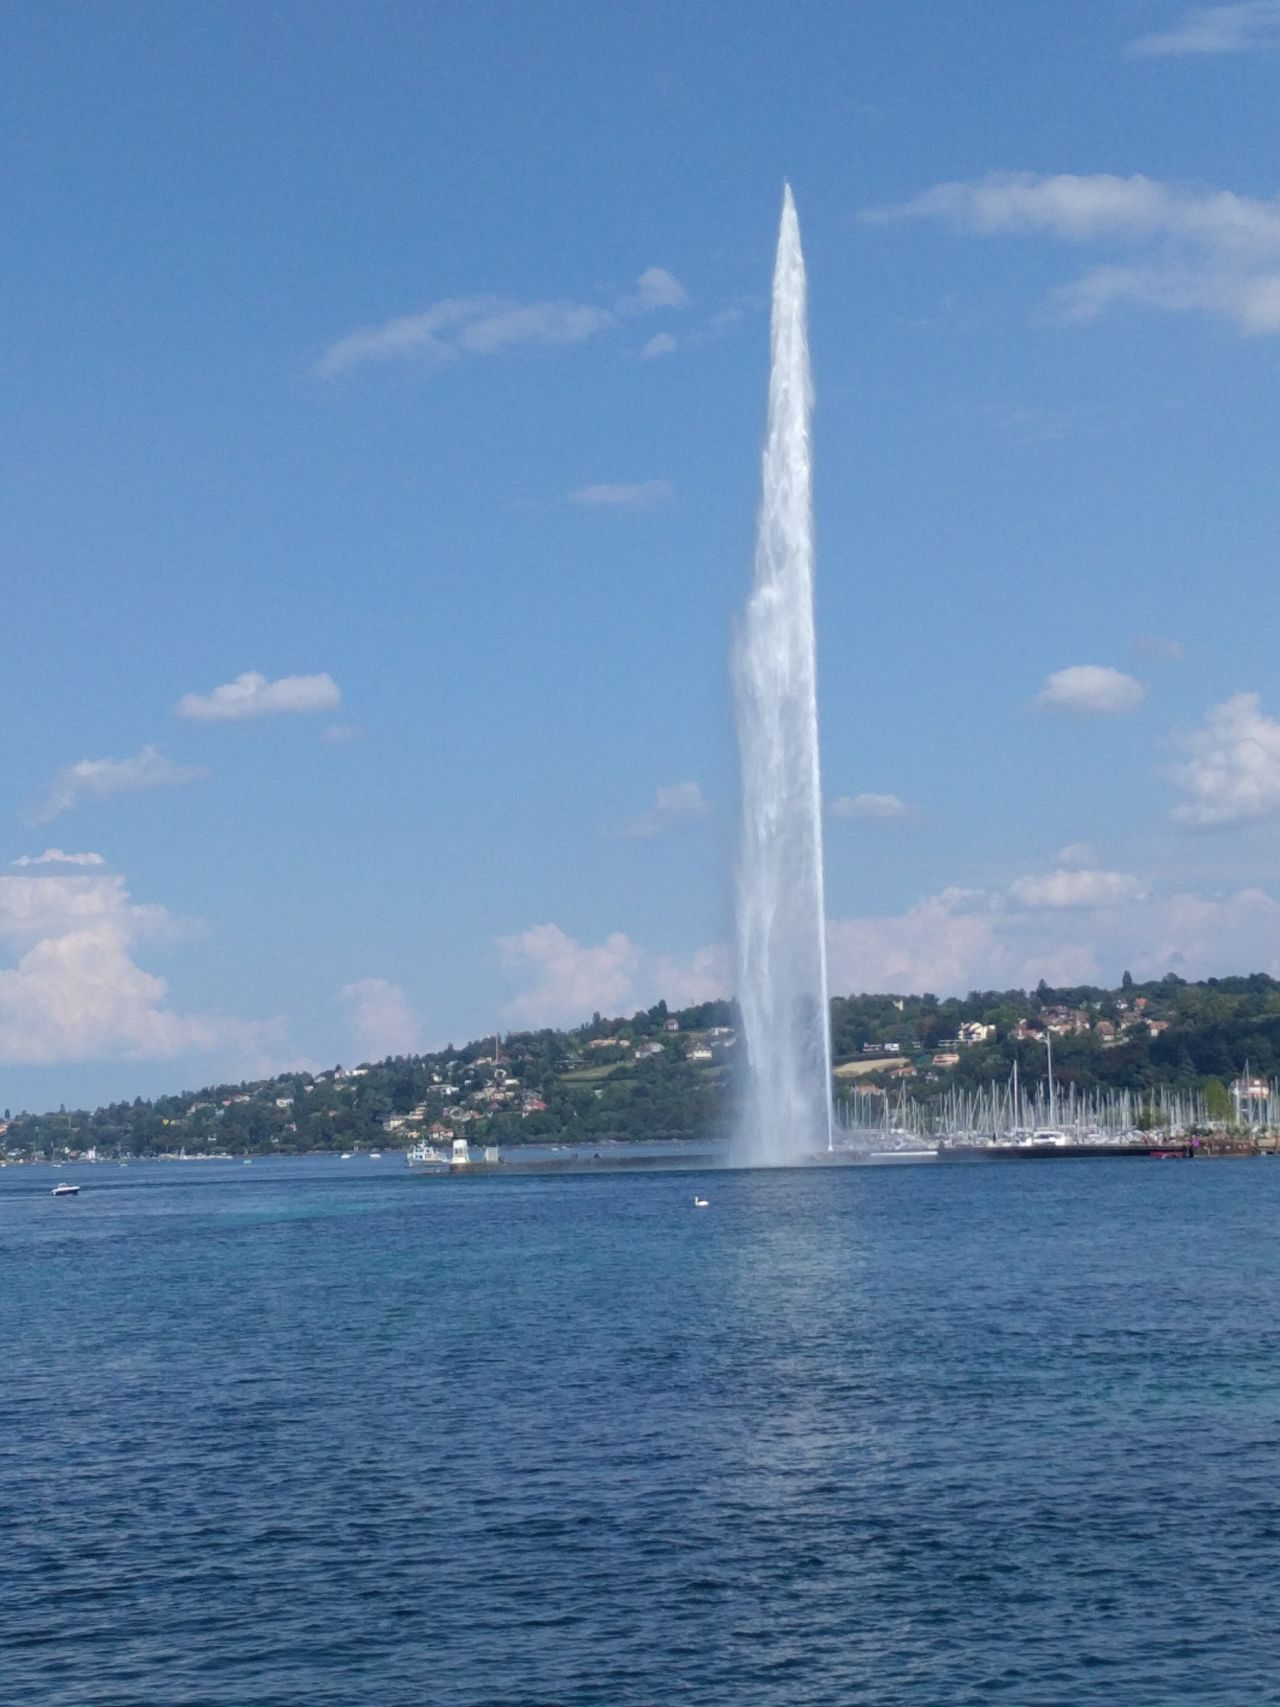 Beauty In Nature Day Fountain Lake Lakeshore Nature Outdoors Sky Splashing Travel Destinations Water